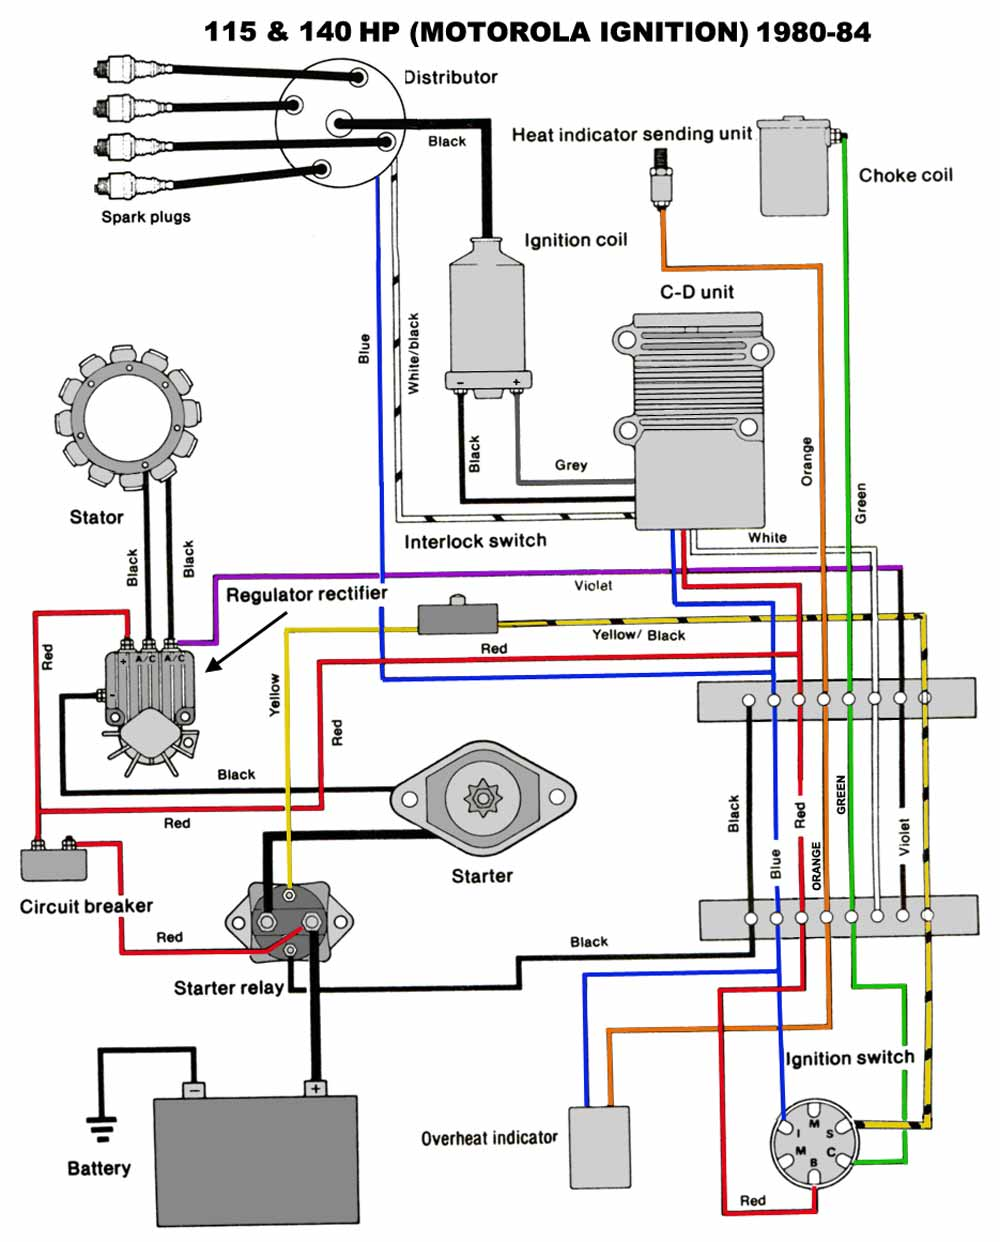 hight resolution of yamaha 2 stroke diagram wiring diagram inside 2004 yamaha 90hp 2 stroke wiring diagram yamaha 90 hp 2 stroke wiring diagram